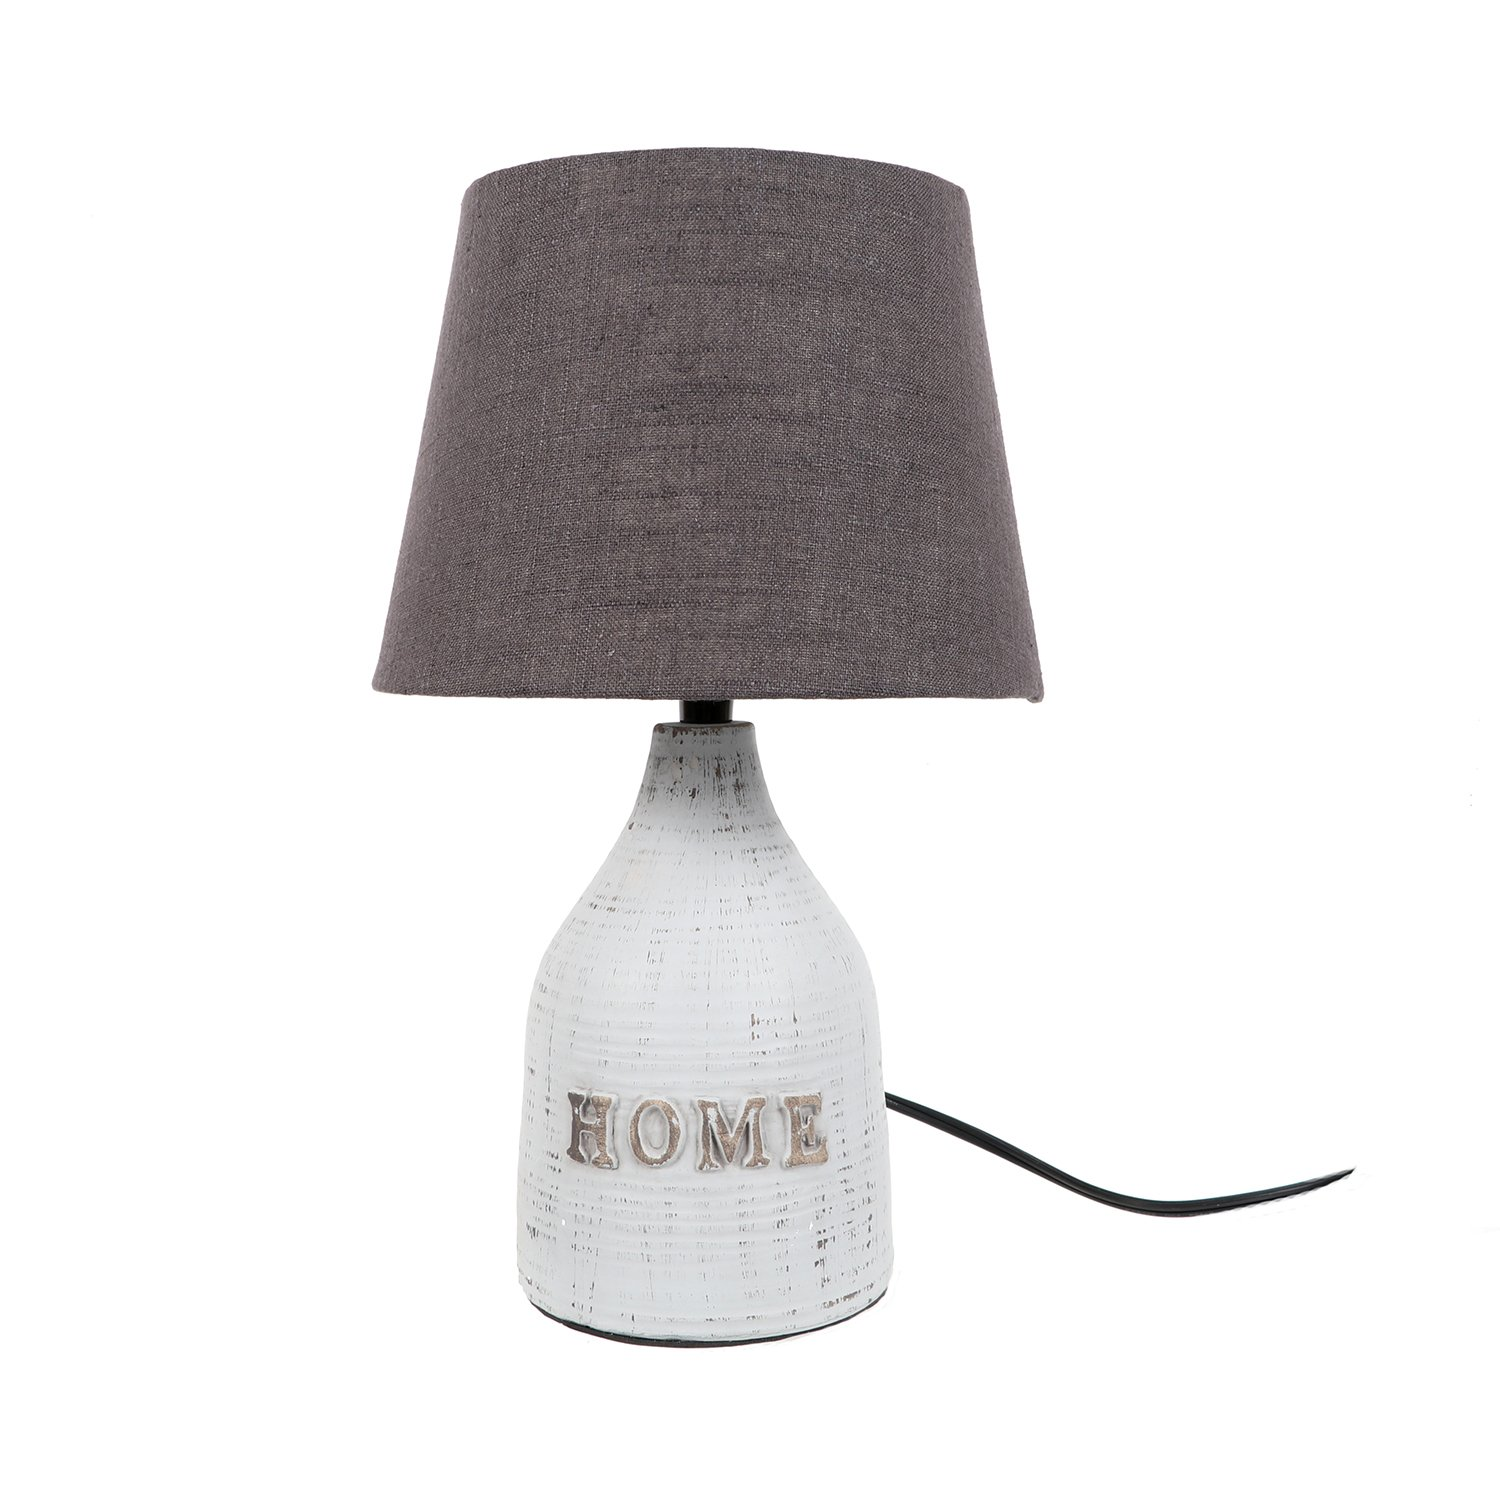 DEI Home Lamp with Textured Shade SM Décor, Medium, White